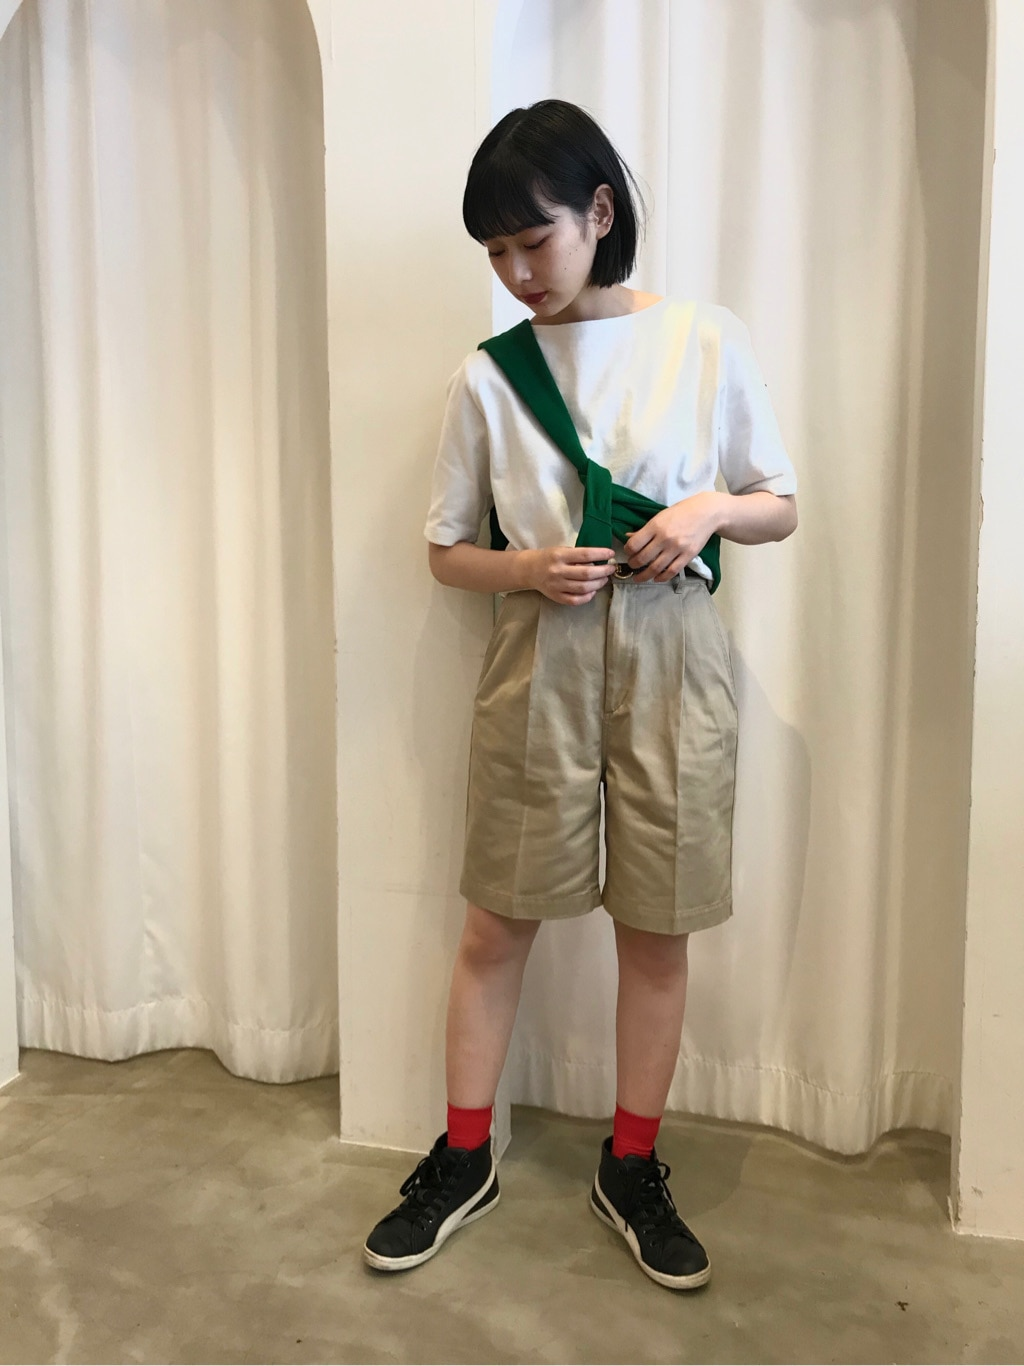 Dot and Stripes CHILD WOMAN ラフォーレ原宿 身長:157cm 2020.07.17